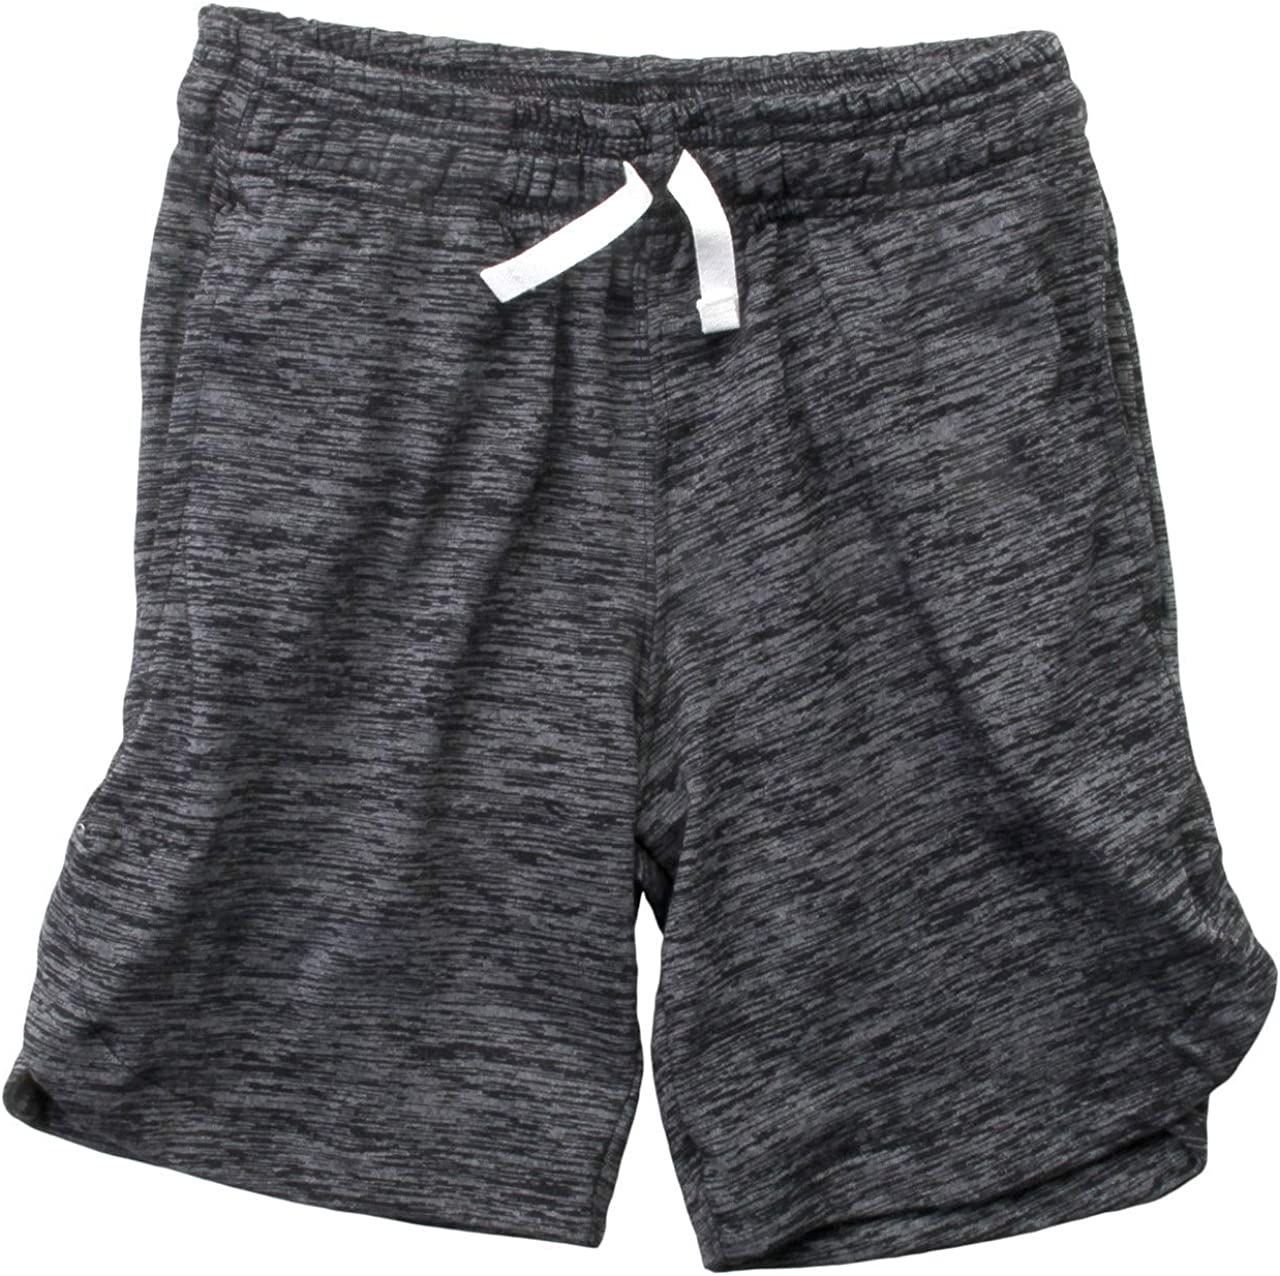 Wes and Willy Black Cloudy Short